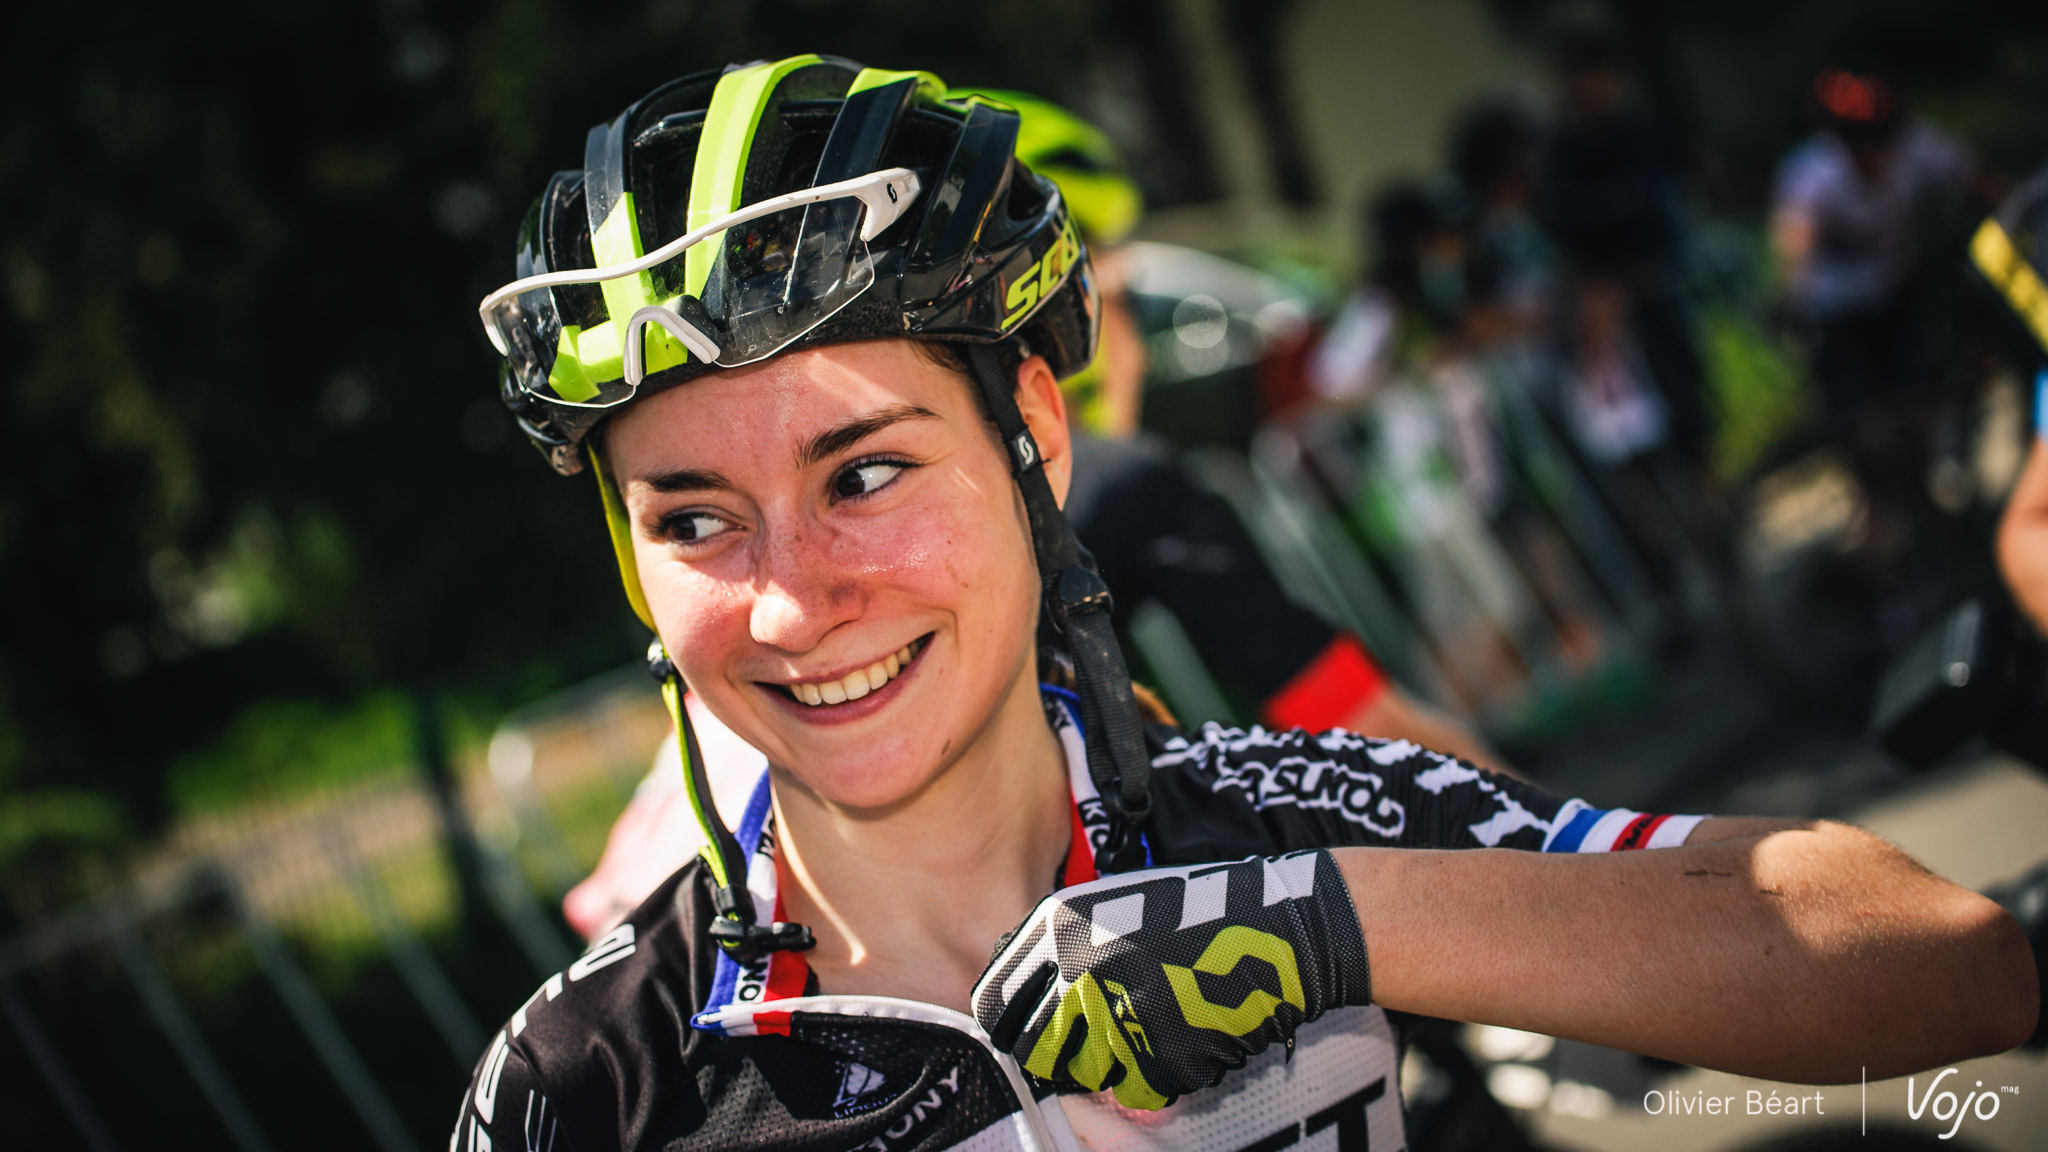 World_Cup_Albstadt_2016_Women_U23_Dames_Audrey_Menut_Copyright_OBeart_VojoMag-1